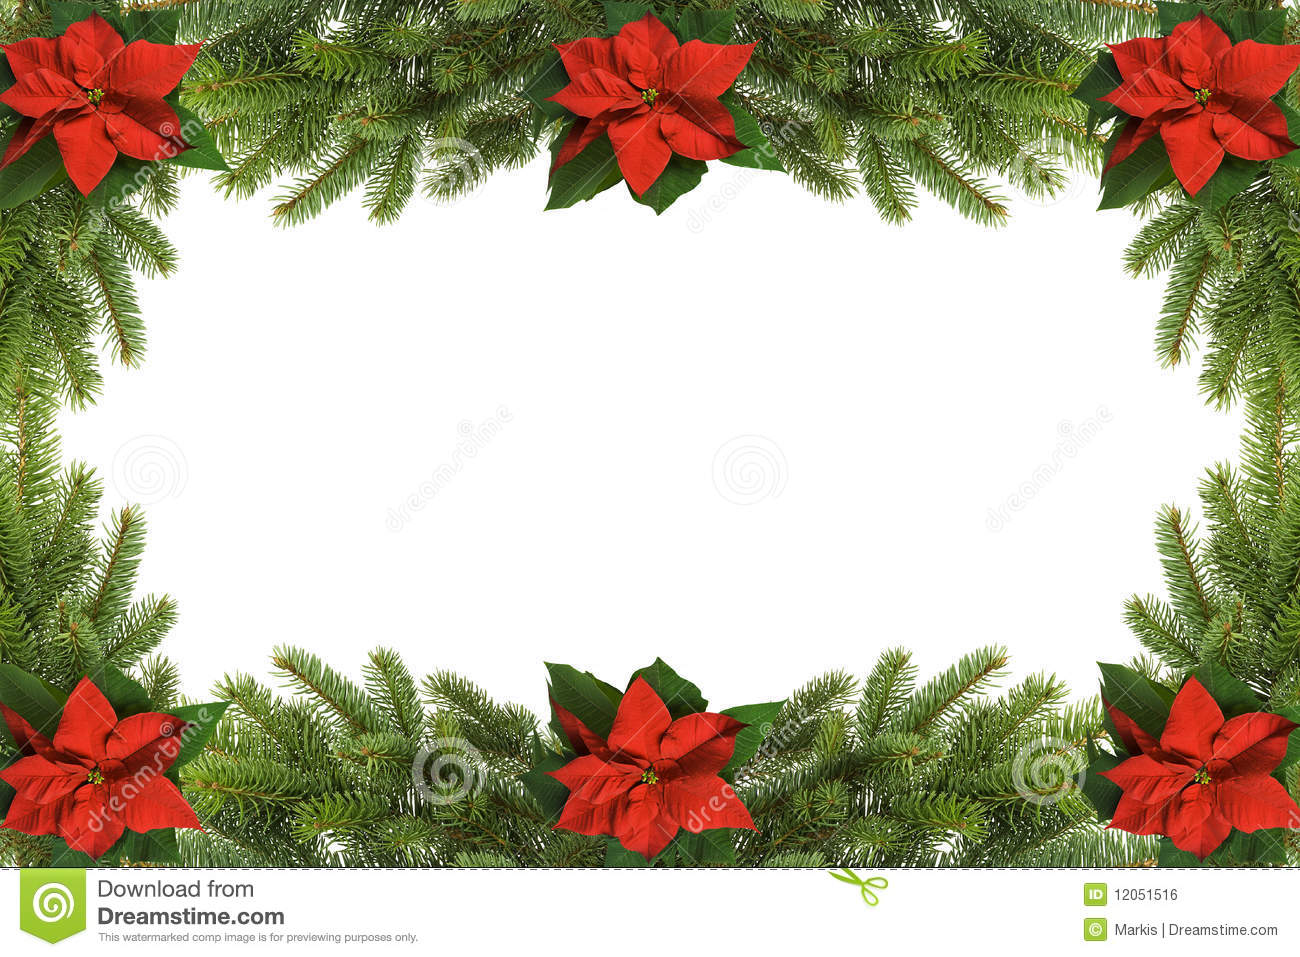 Christmas Frame Royalty Free Stock Image - Image: 12051516